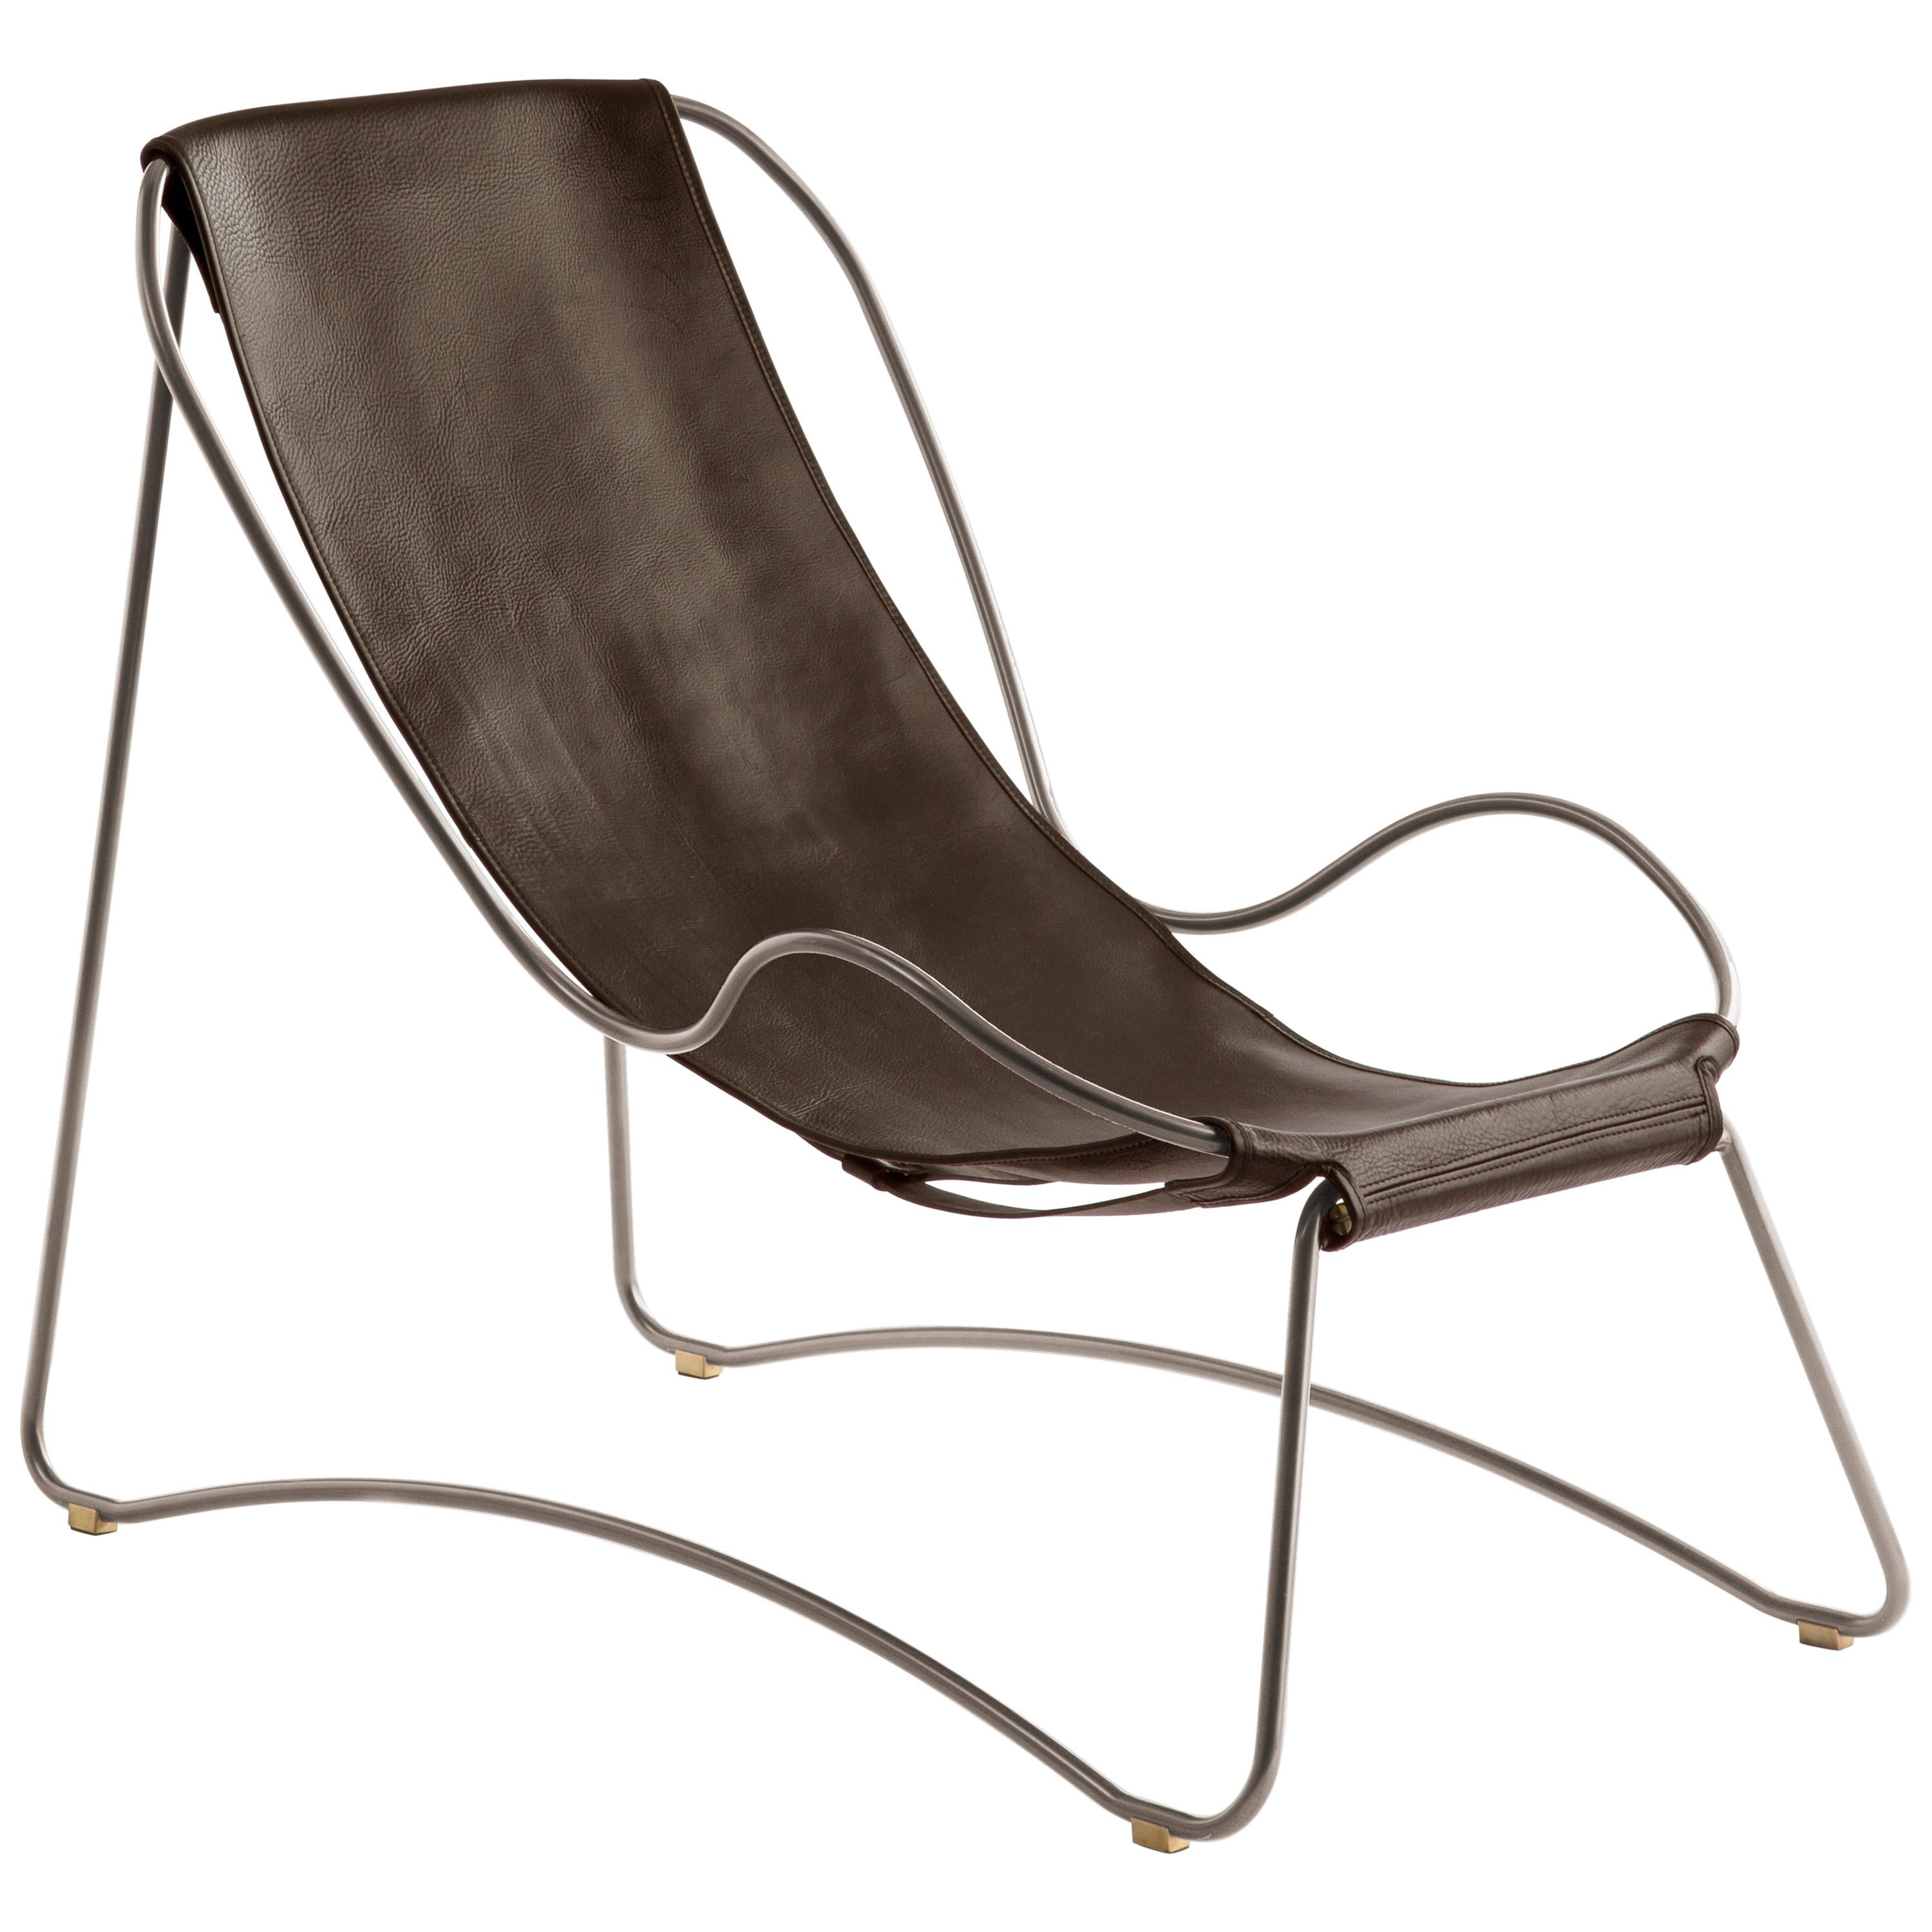 Chaise Longue, Old Silver Steel and Dark Brown Leather, Modern Style